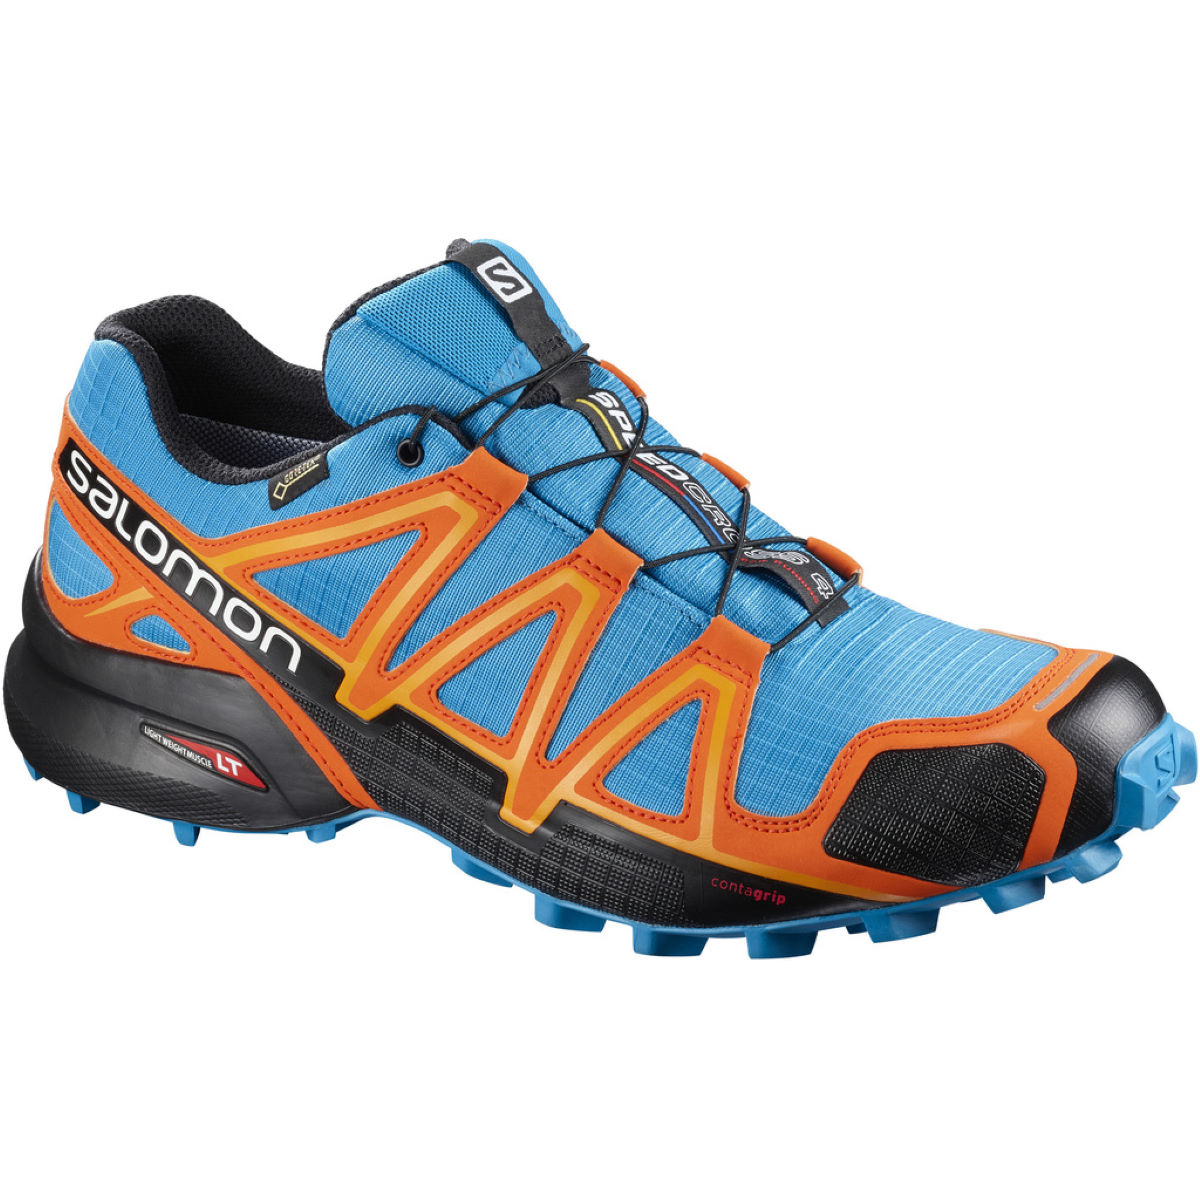 Zapatillas Salomon Speedcross 4 GTX (OI16) - Zapatillas de trail running